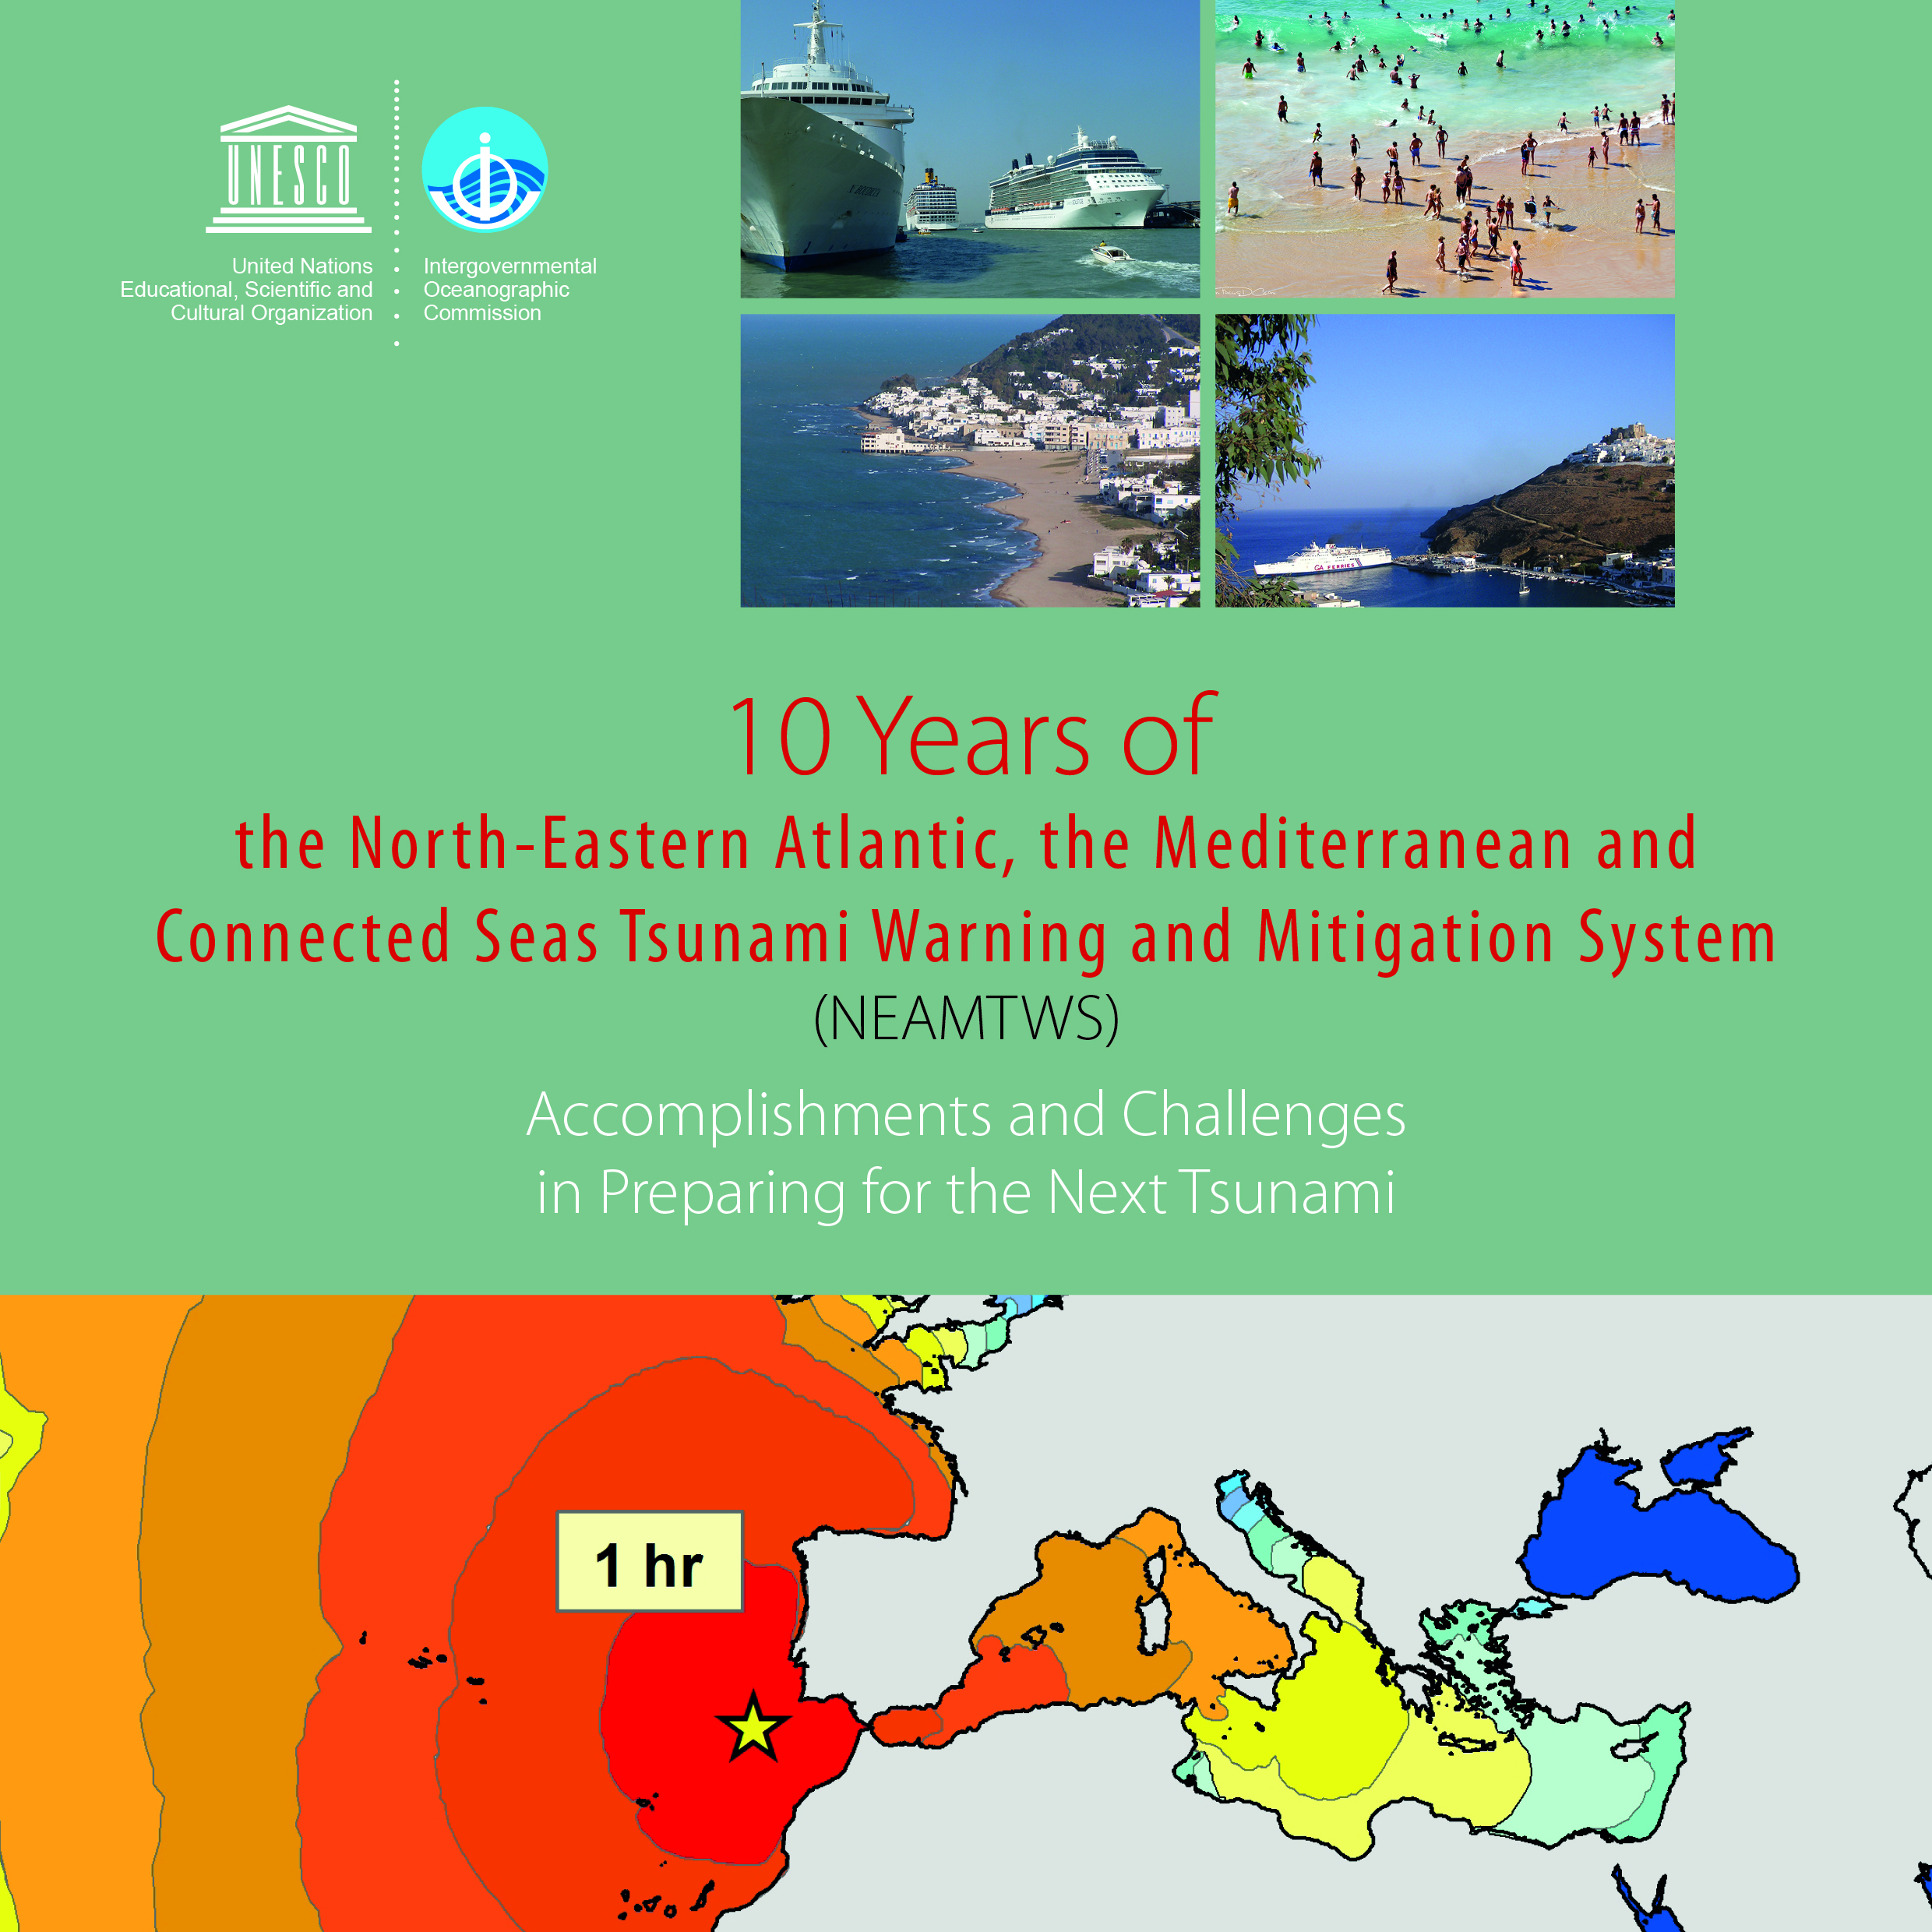 Booklet - 10 Years of the North-Eastern Atlantic, the Mediterranean and Connected Seas Tsunami Warning and Mitigation System (NEAMTWS): Accomplishments and Challenges in Preparing for the Next Tsunami